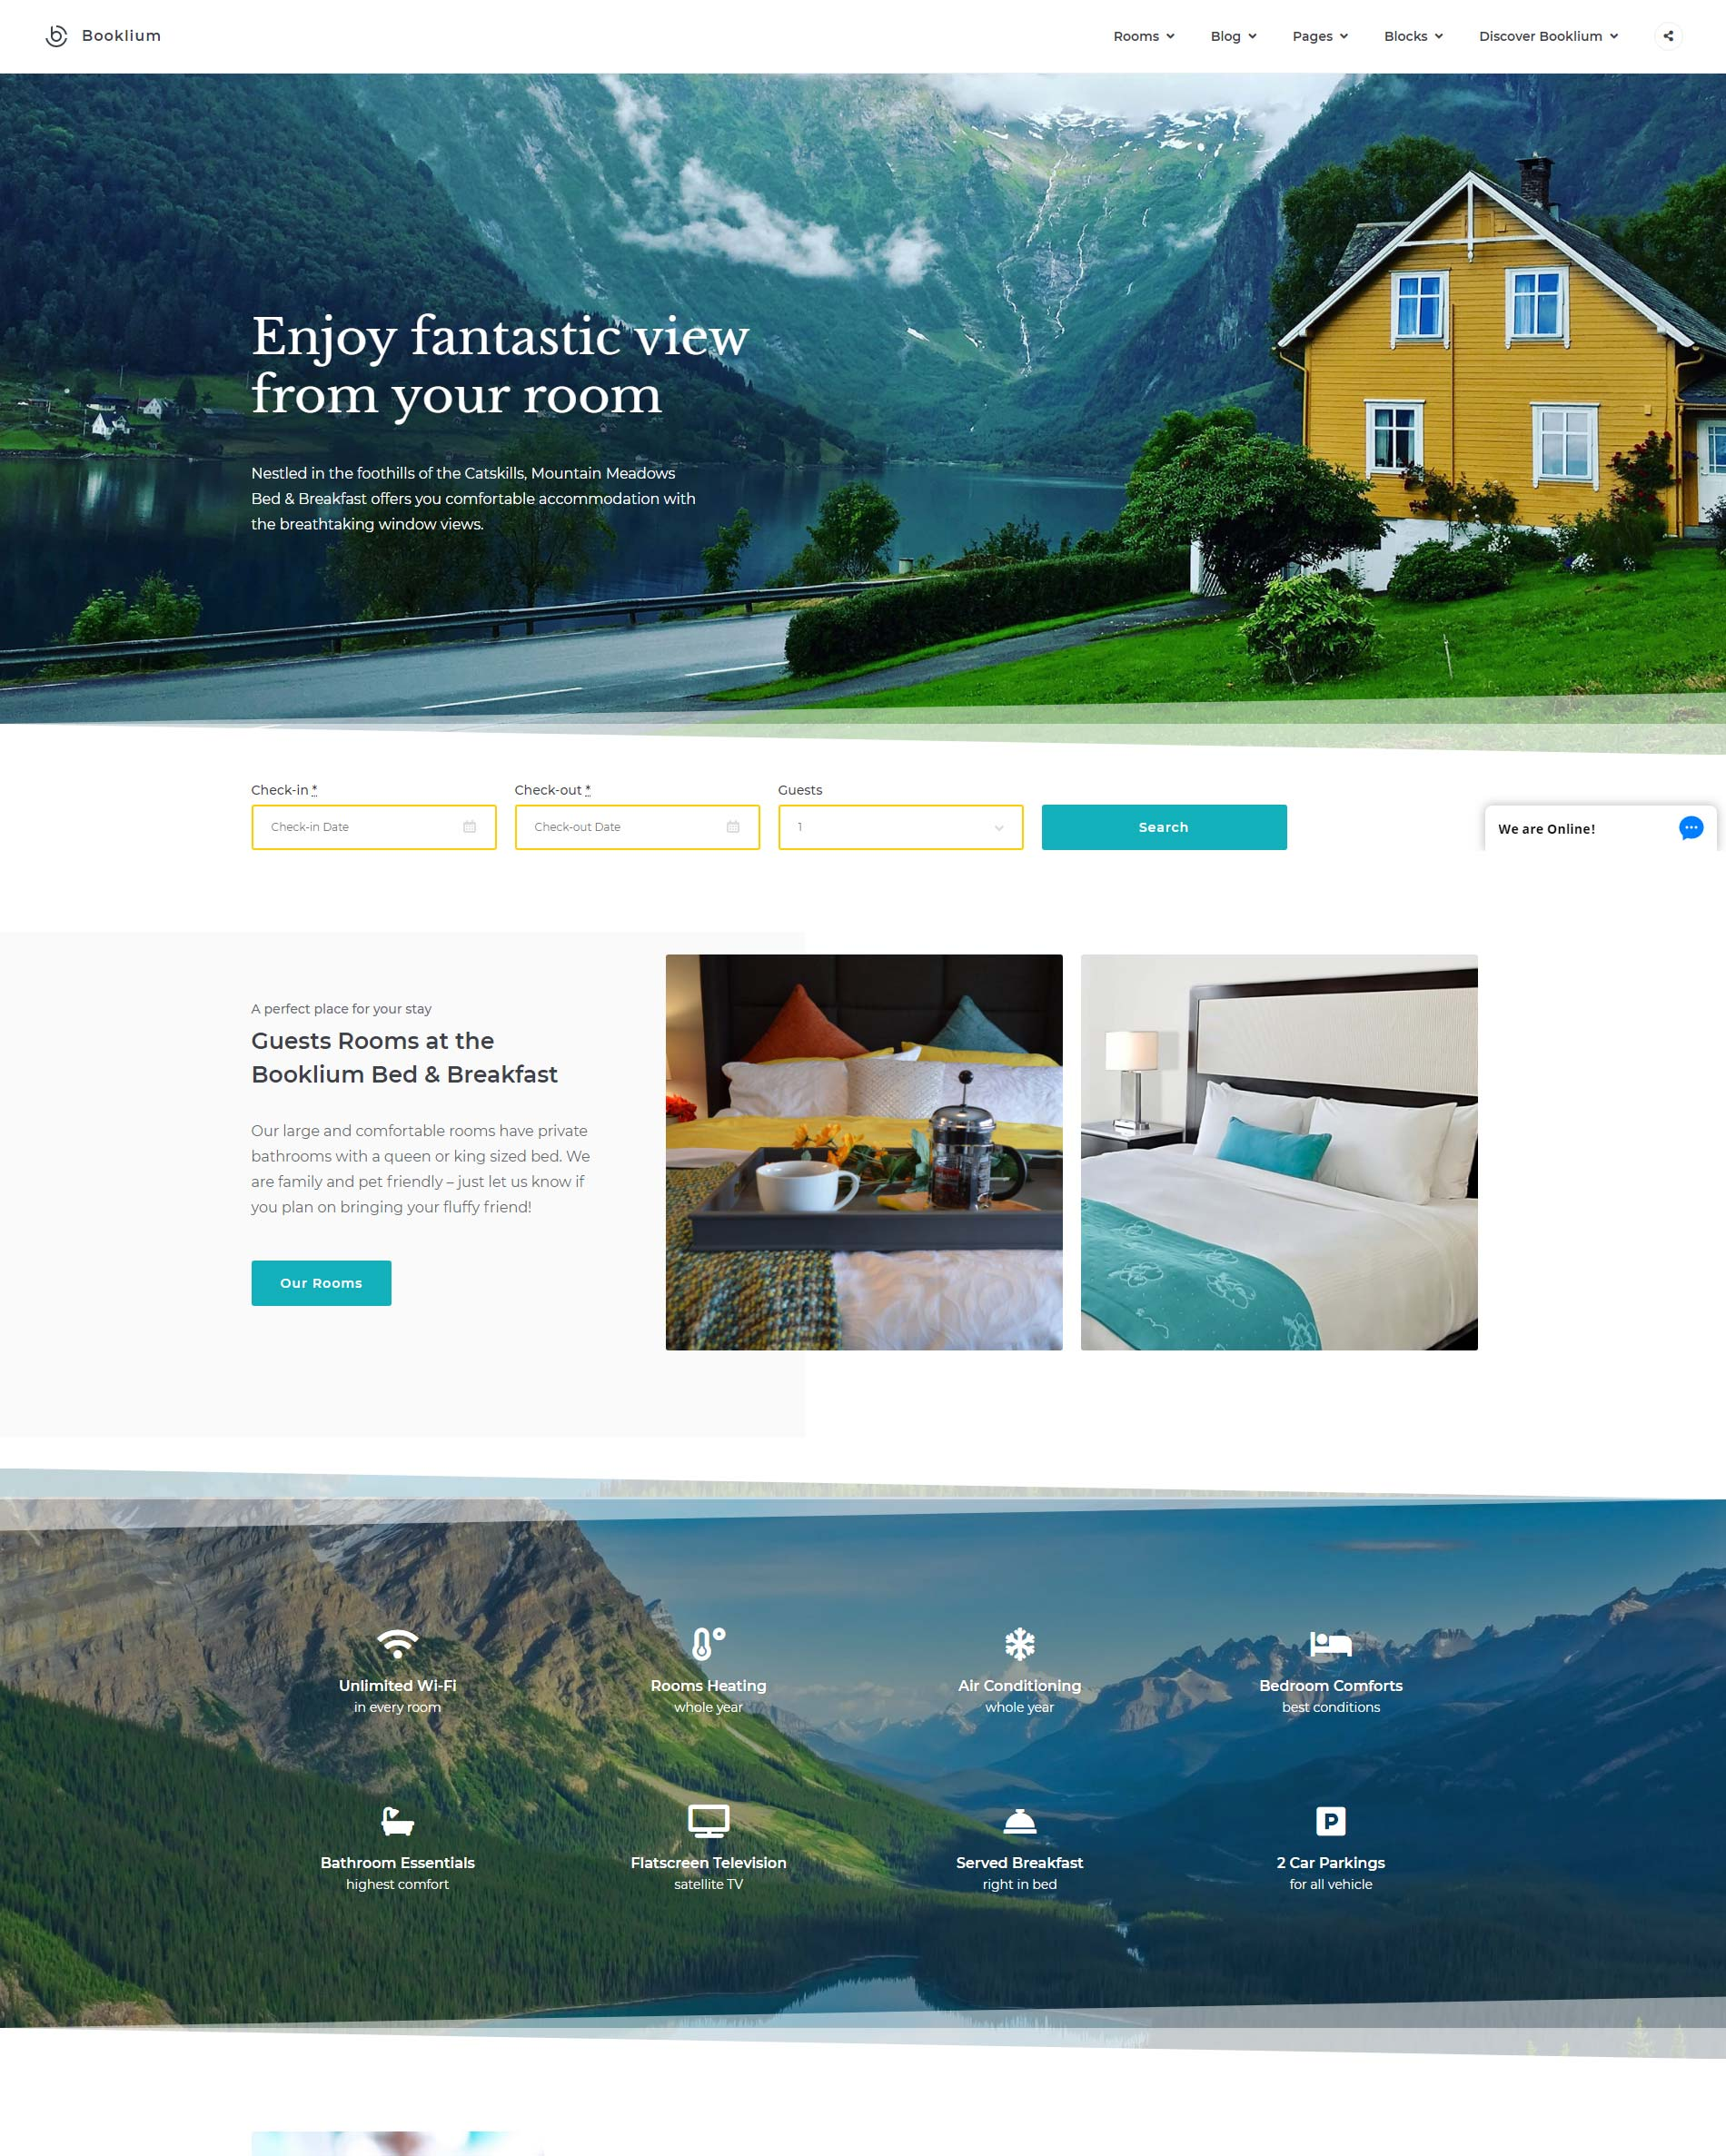 bed-and-breakfast-layout-booklium